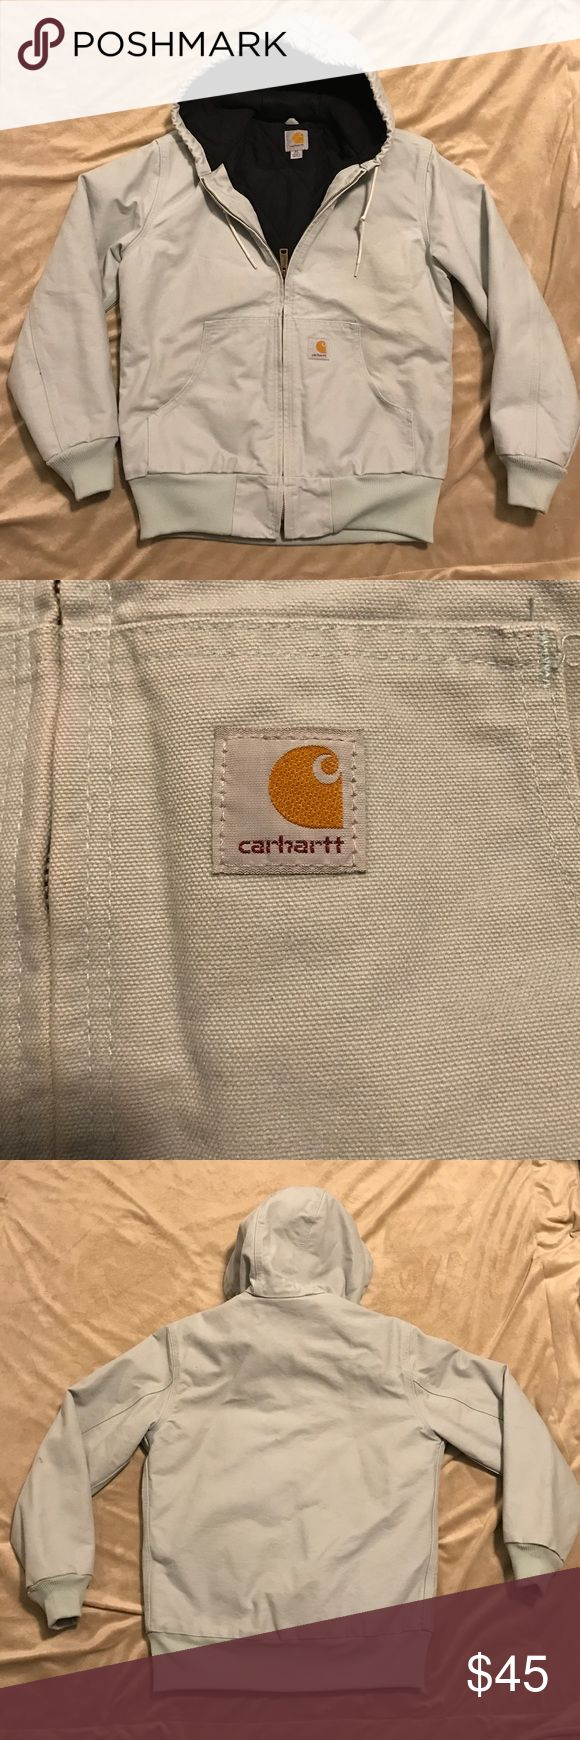 Womens Carhartt Jacket It's a light denim blue color. Inside zip pocket, as well as two outside pockets. Authentic carhartt, so it's very heavy, keeps the cold out & the warmth in. No stains or rips. It's in very good condition! Carhartt Jackets & Coats Utility Jackets